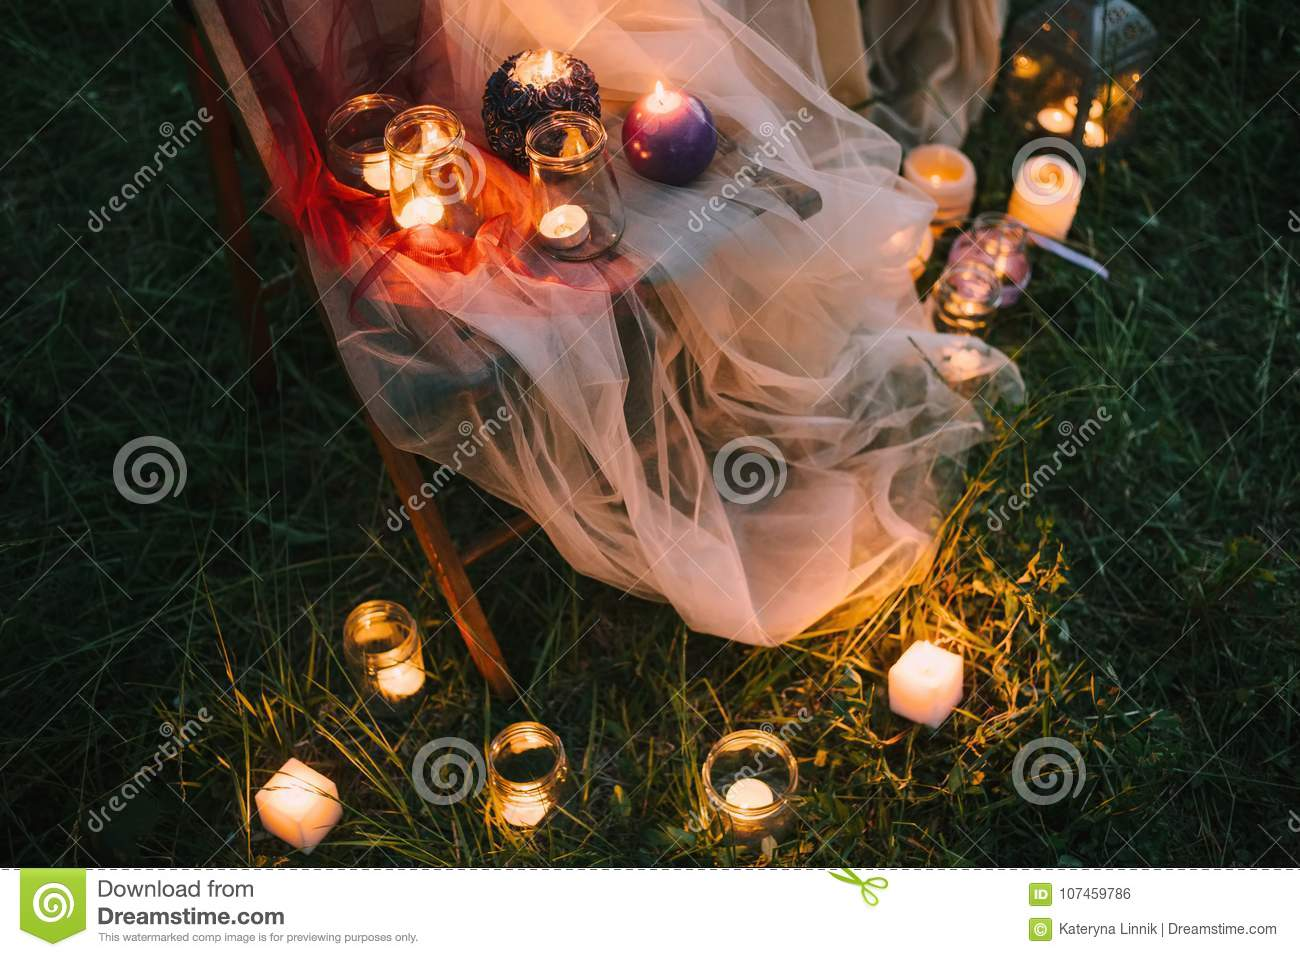 Night fine art outdoor wedding details: summer or spring ceremony with decor lowlight candles standing on chair covered